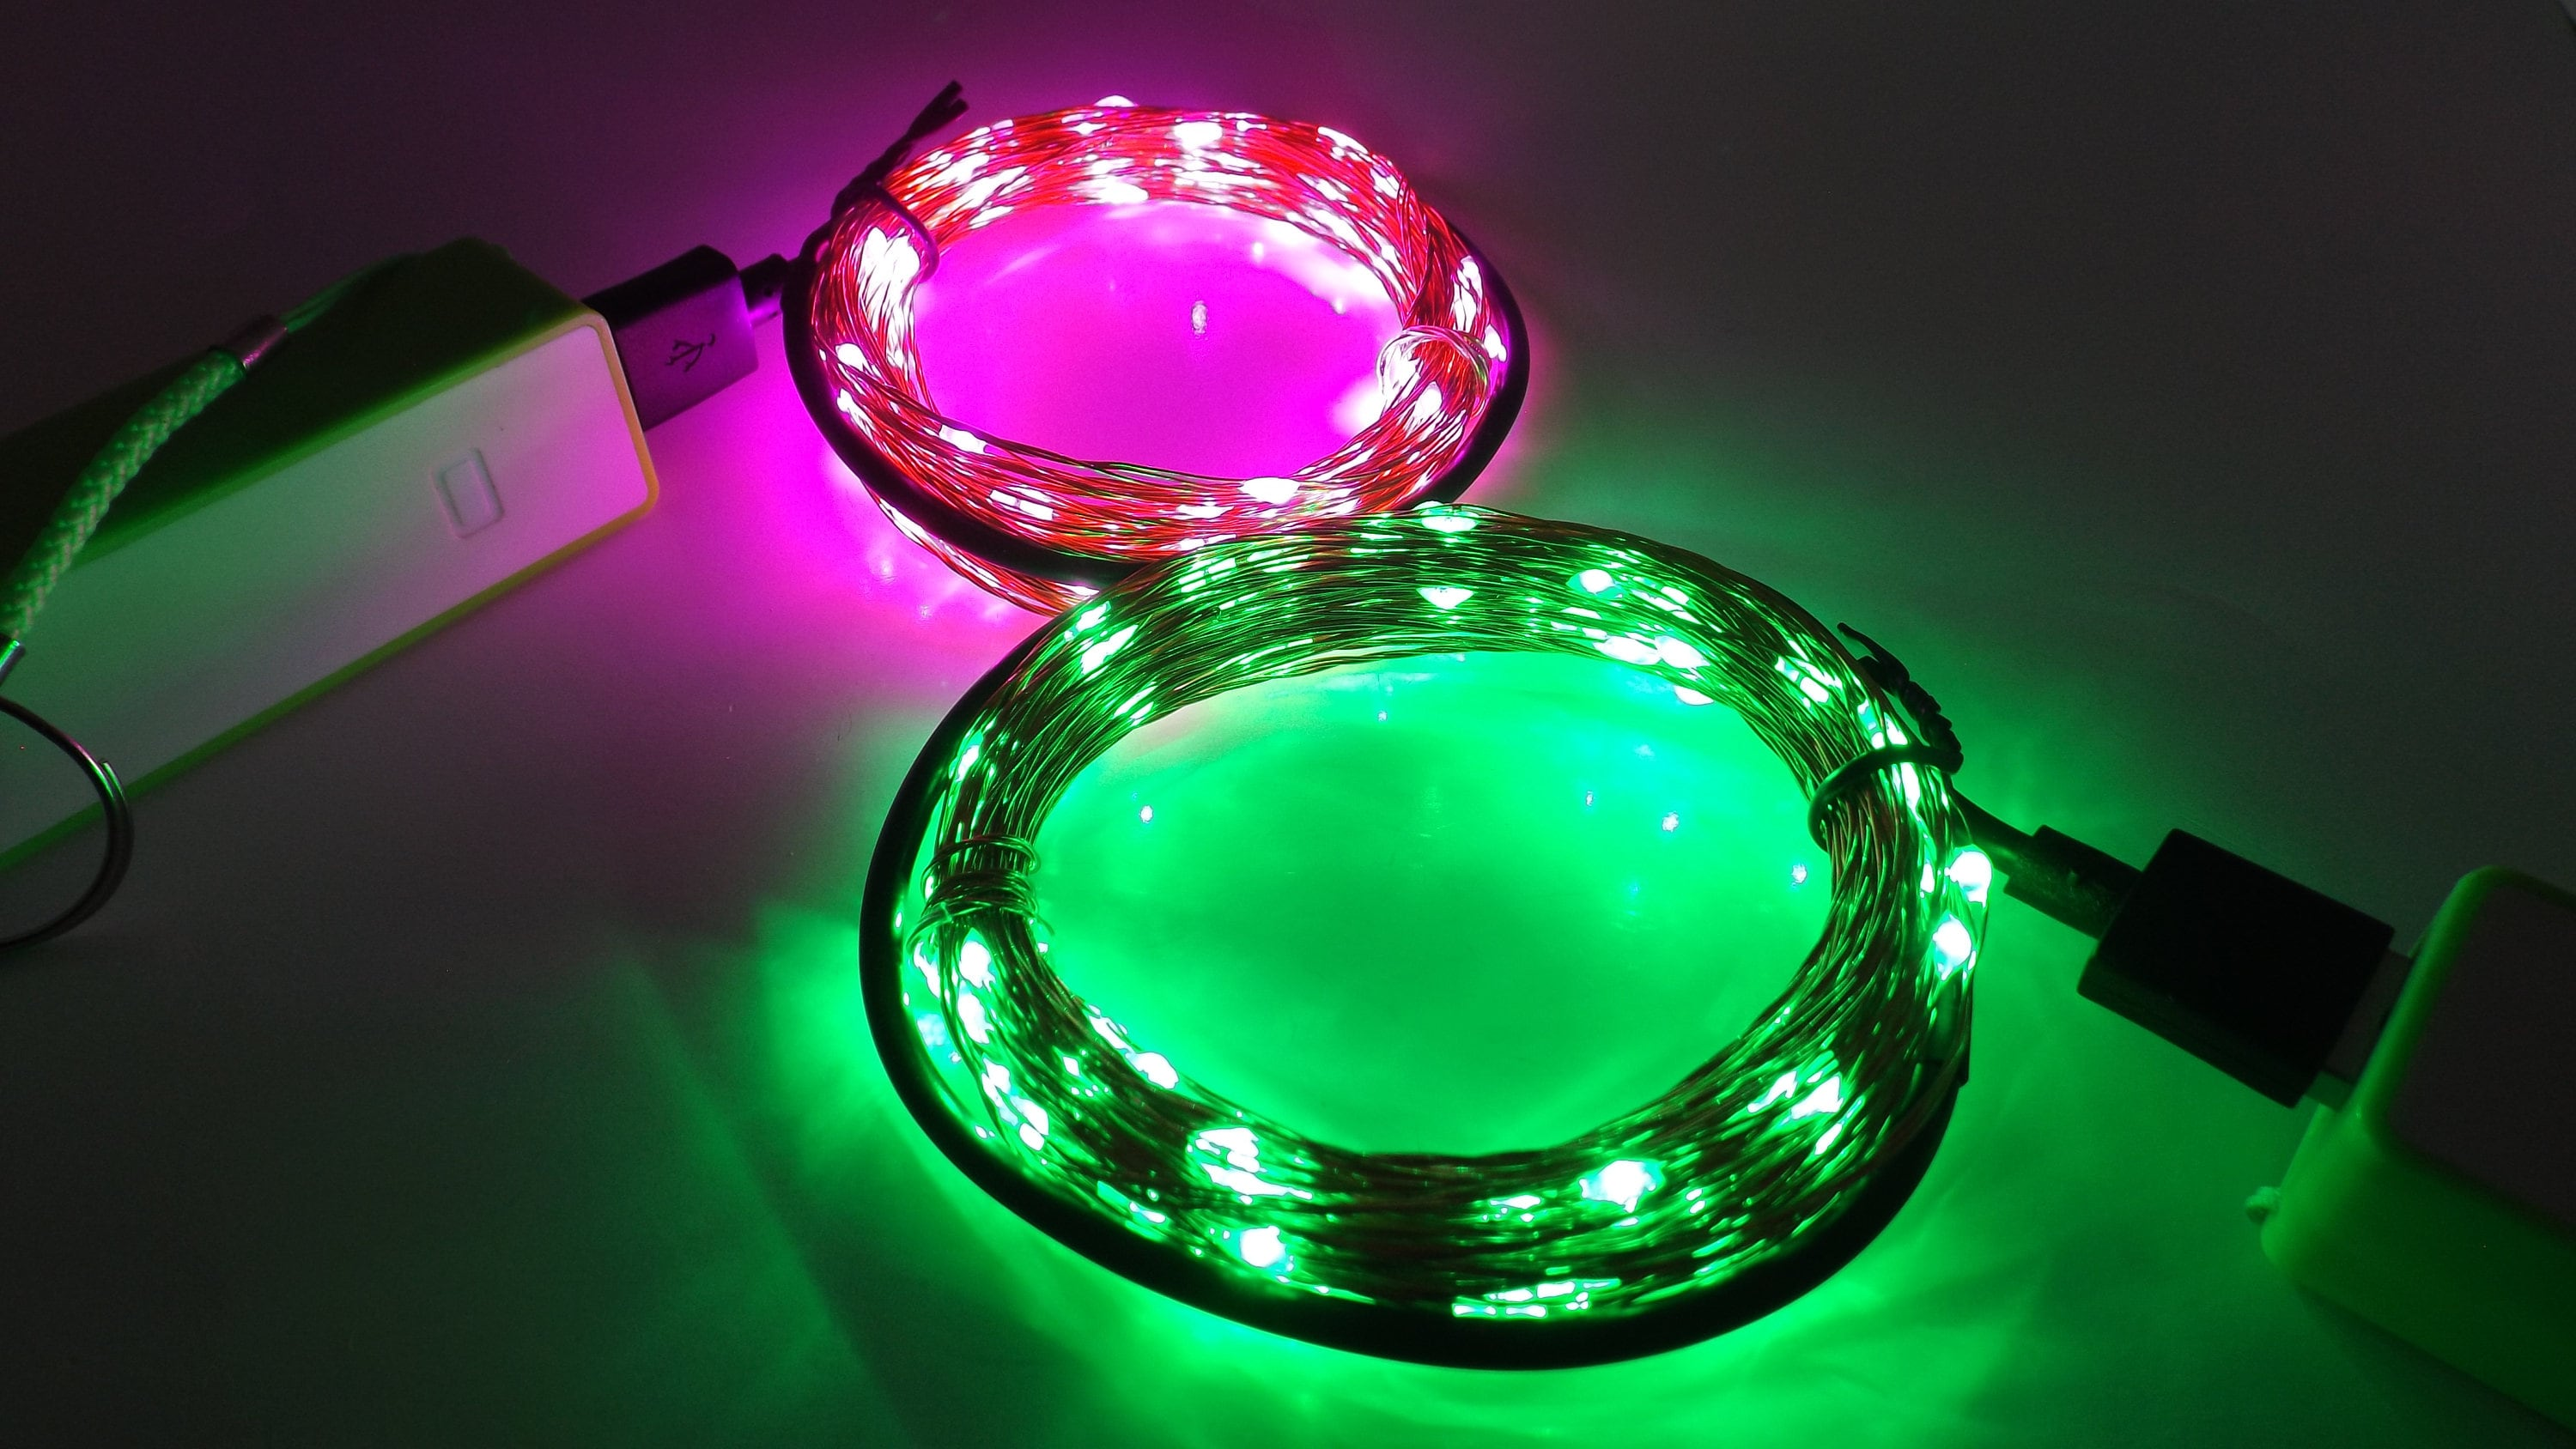 lights img best compare any mount flush in product led world loomis green lighting shop there even most all powerful gallery light not to chart others s watts the close out are comparison see they transom our